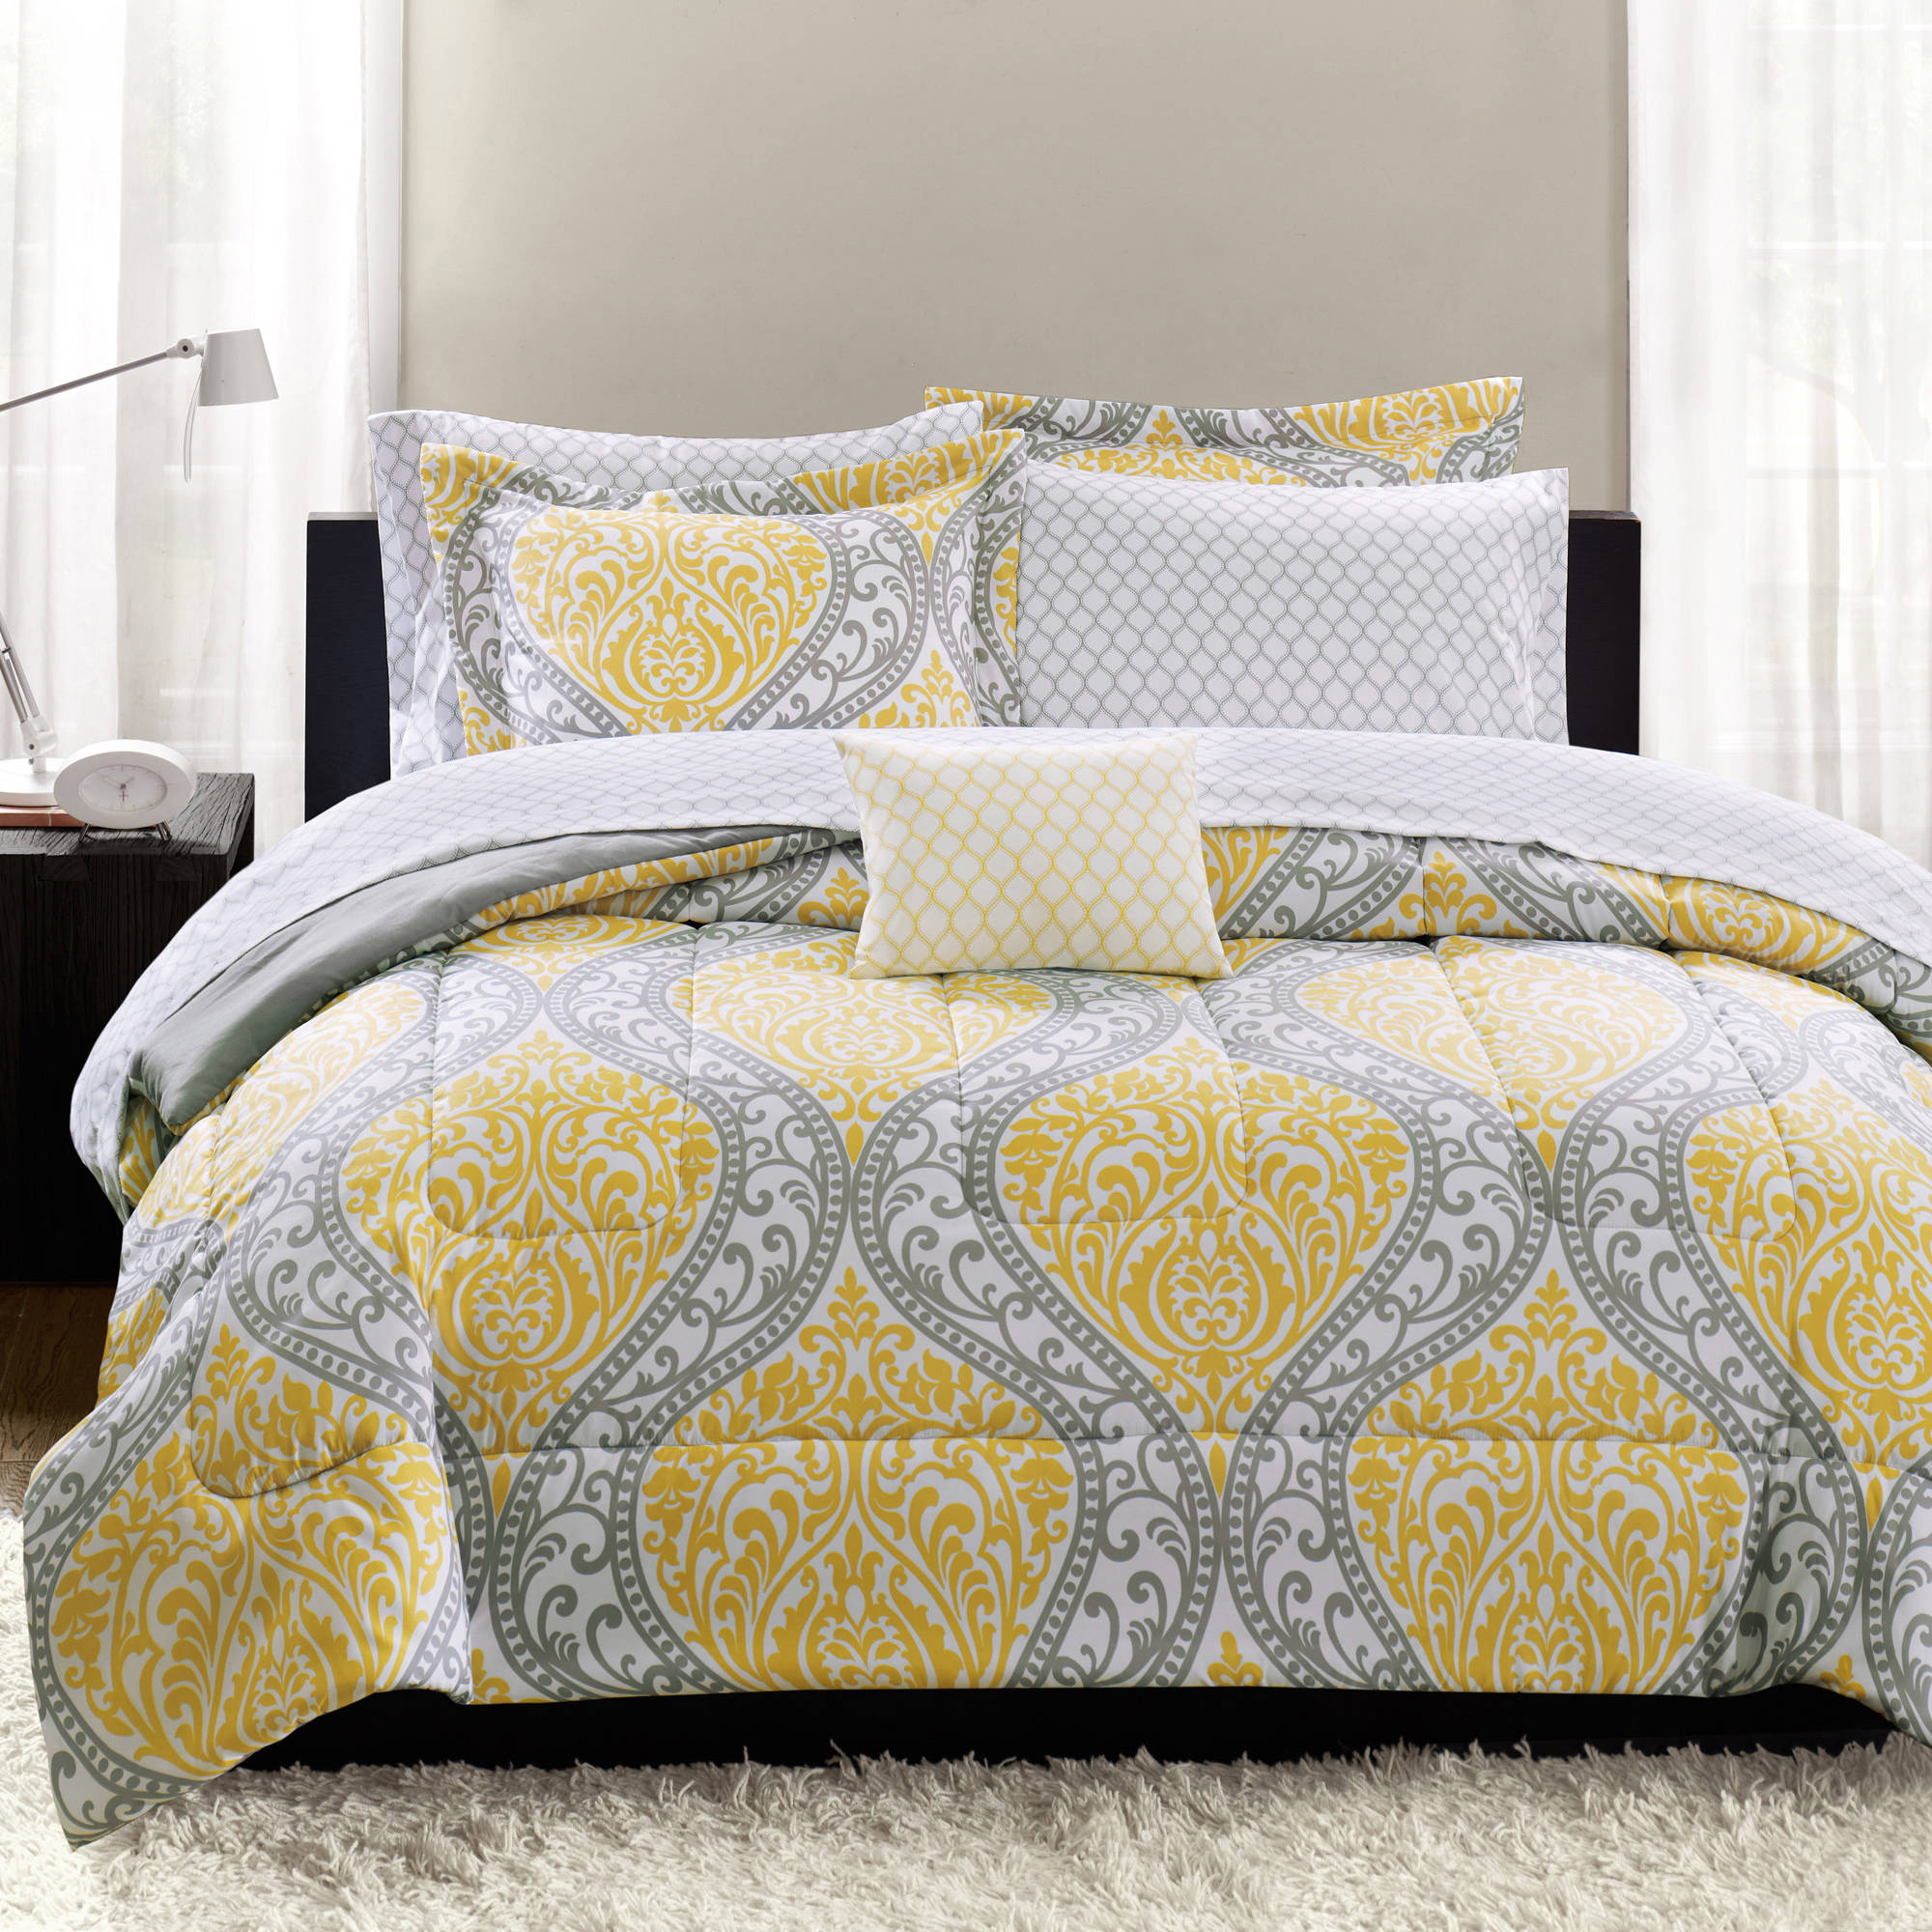 walmart king size comforters Mainstays Yellow Damask Coordinated Bedding Set Bed in a Bag  walmart king size comforters